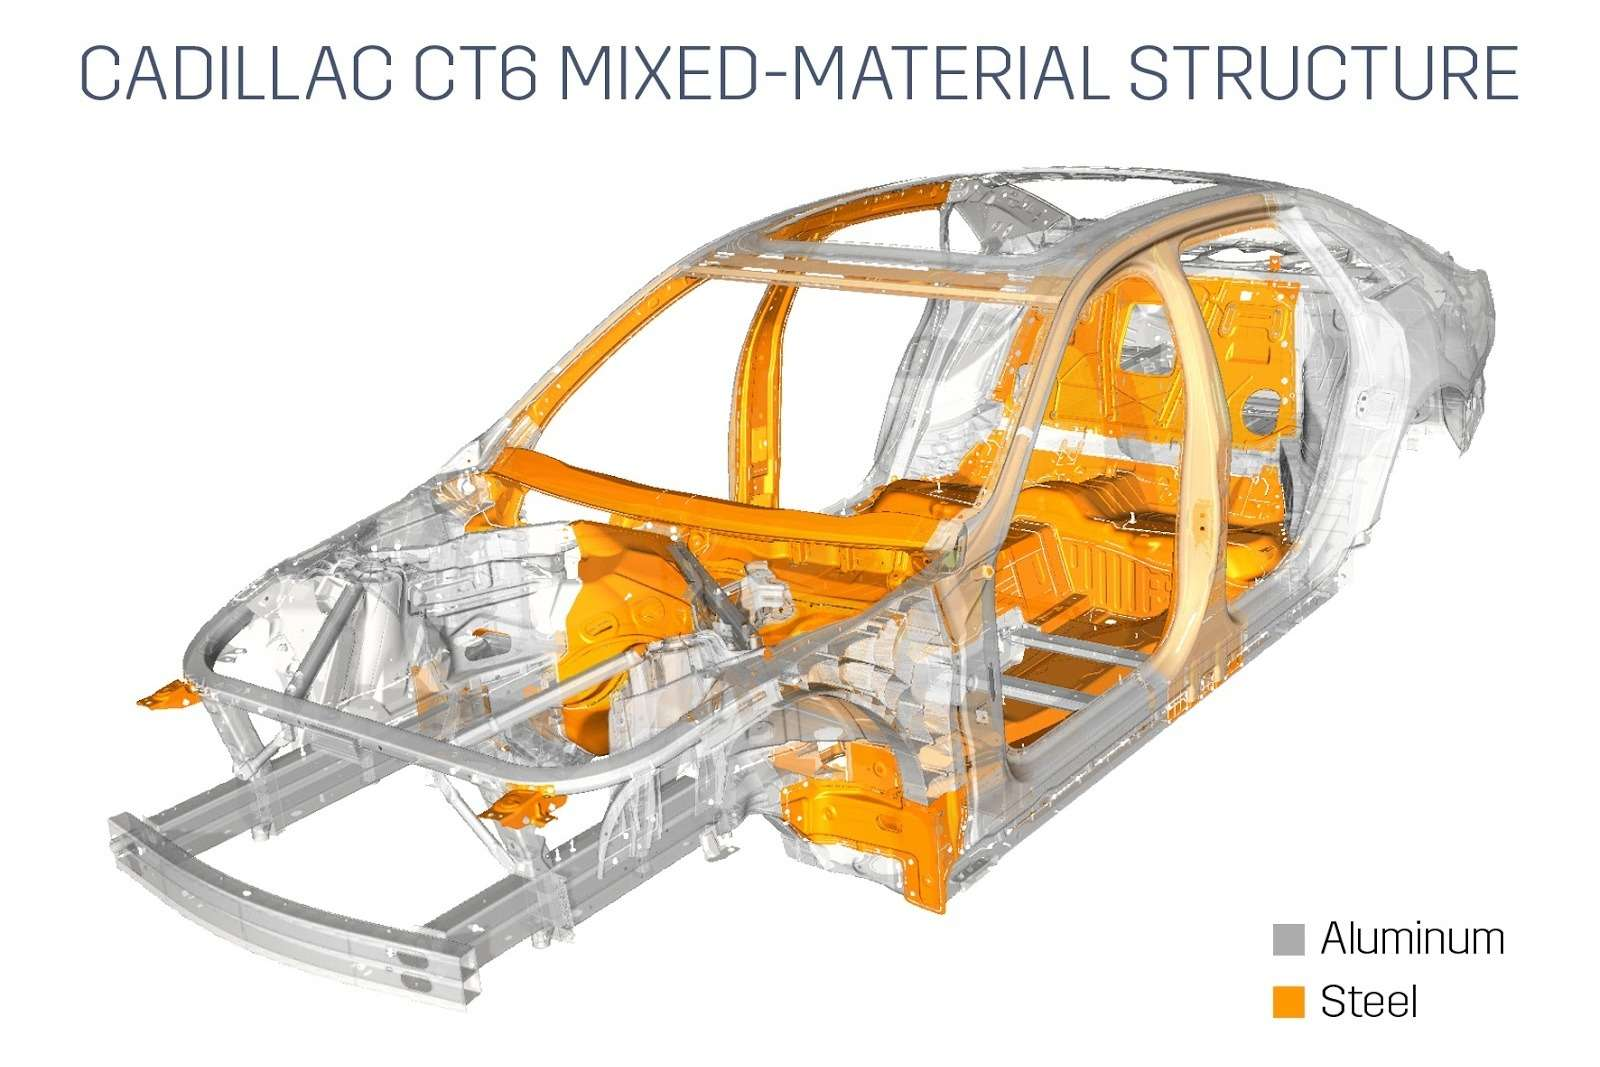 Cadillac-CT6-Structure